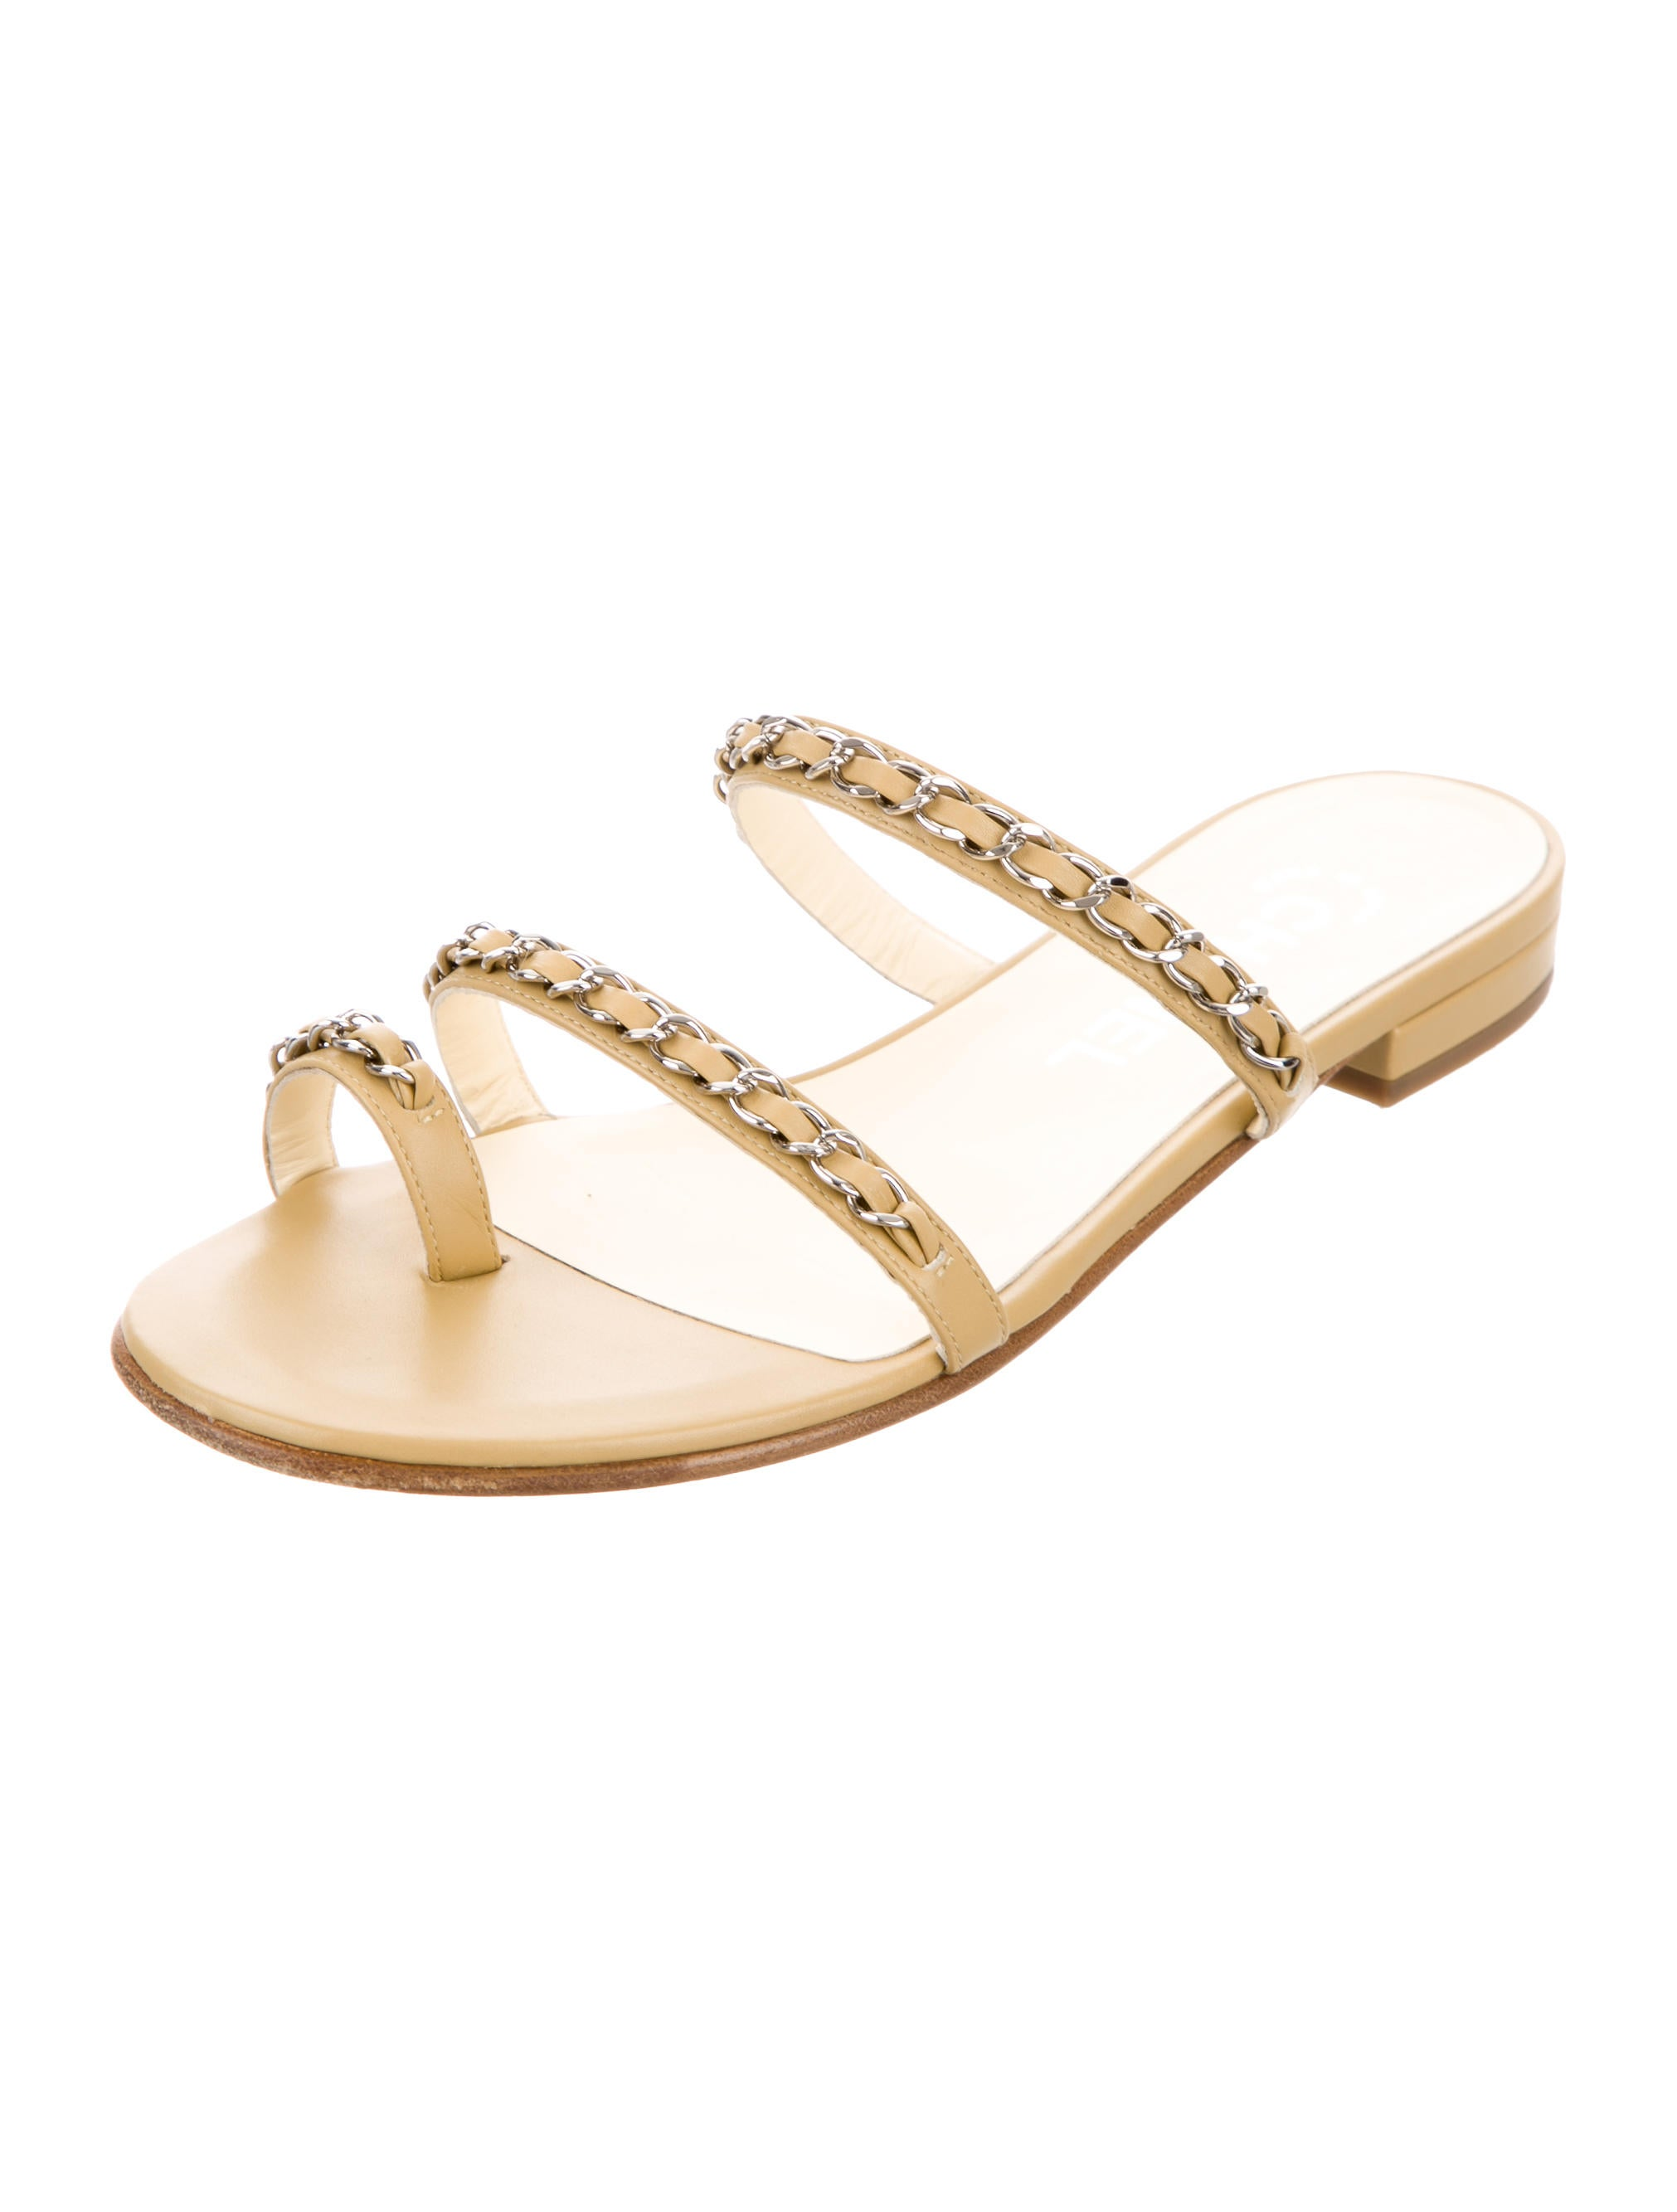 Chanel Cruise 2016 Slide Sandals - Shoes - CHA128416 | The RealReal